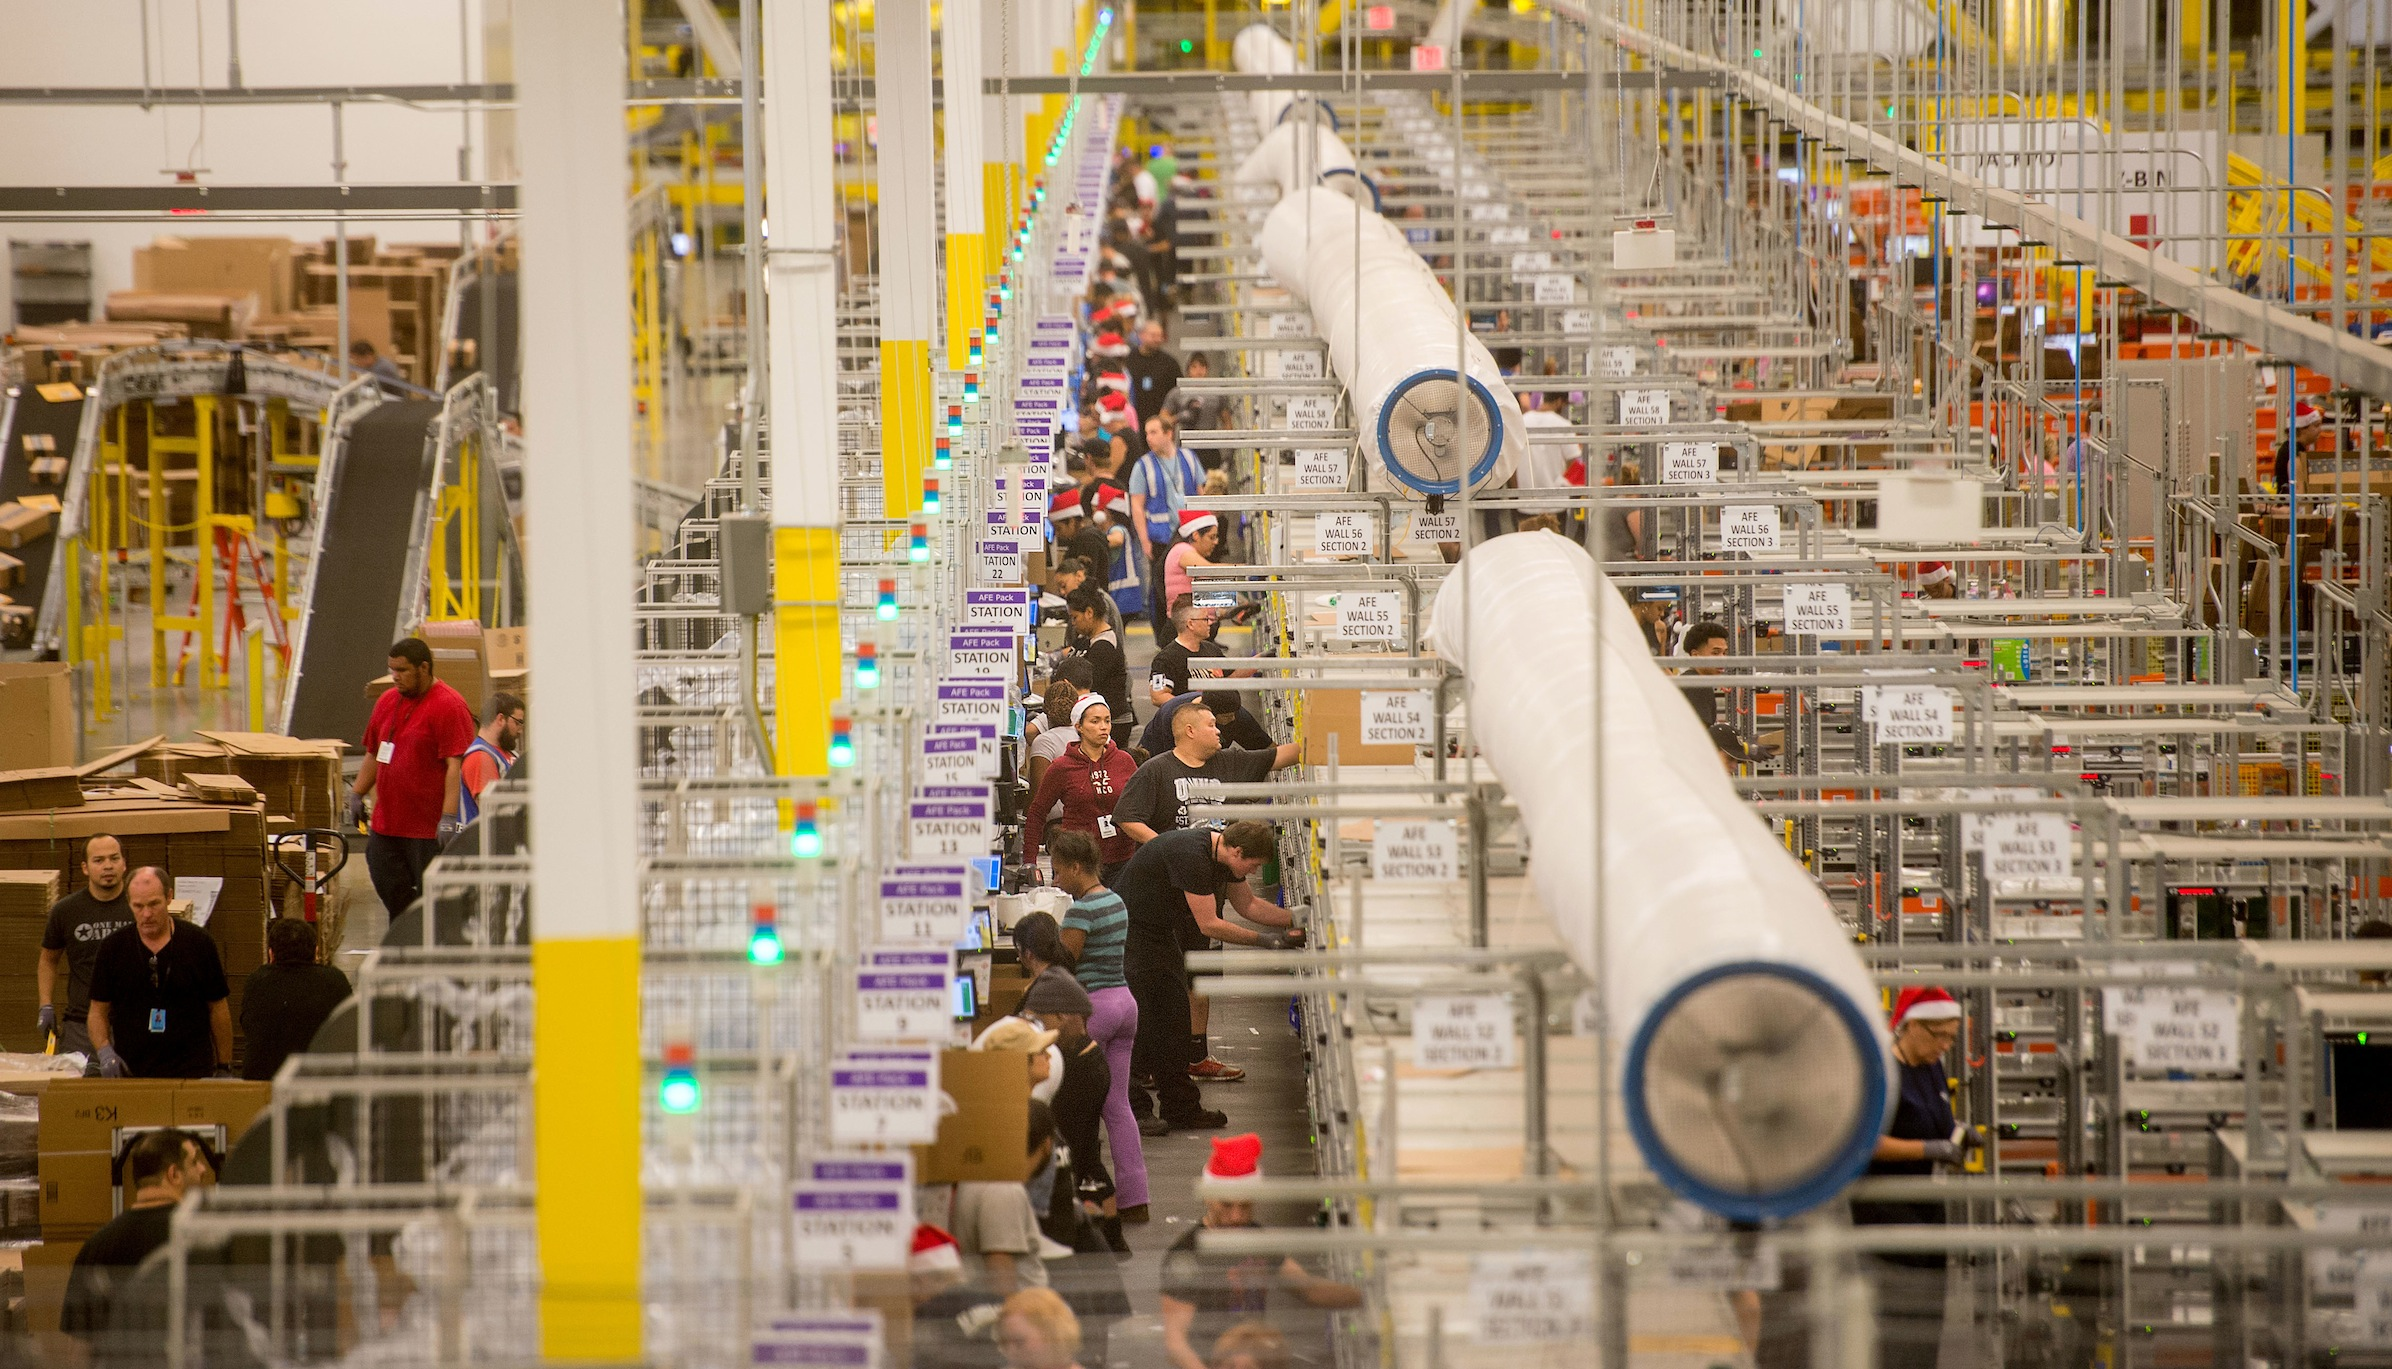 Workers prepare outgoing shipments at an Amazon Fulfillment Center, ahead of the Christmas rush, in Tracy, California, November 30, 2014. REUTERS/Noah Berger  (UNITED STATES - Tags: BUSINESS SOCIETY TPX IMAGES OF THE DAY) - RTR4G75T